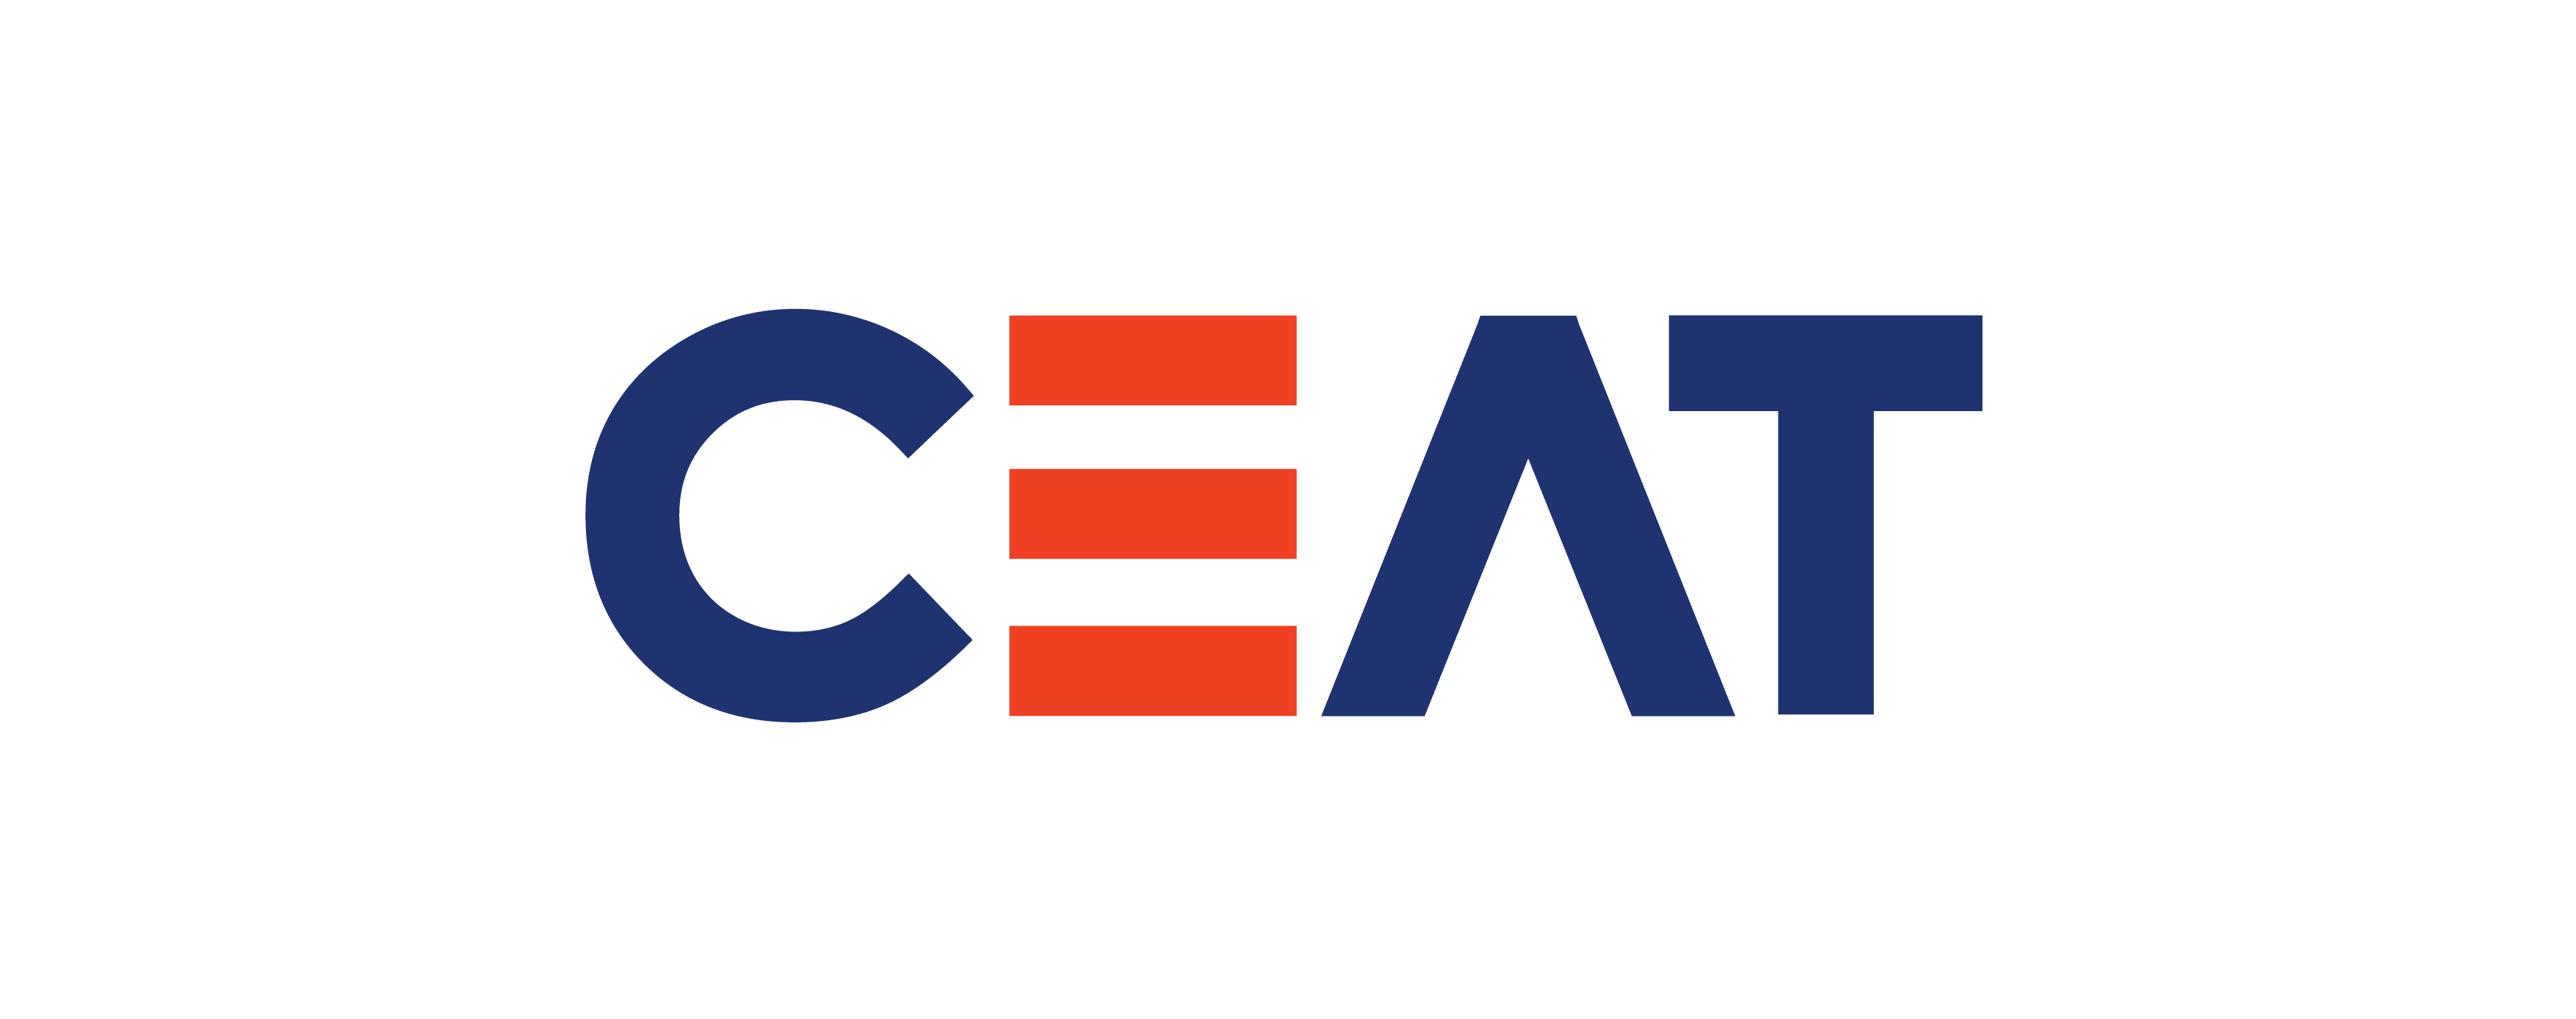 ceat tyres archives auto news press rh autonewspress com knowledge adventure discover learn excel logo knowledge adventure logopedia